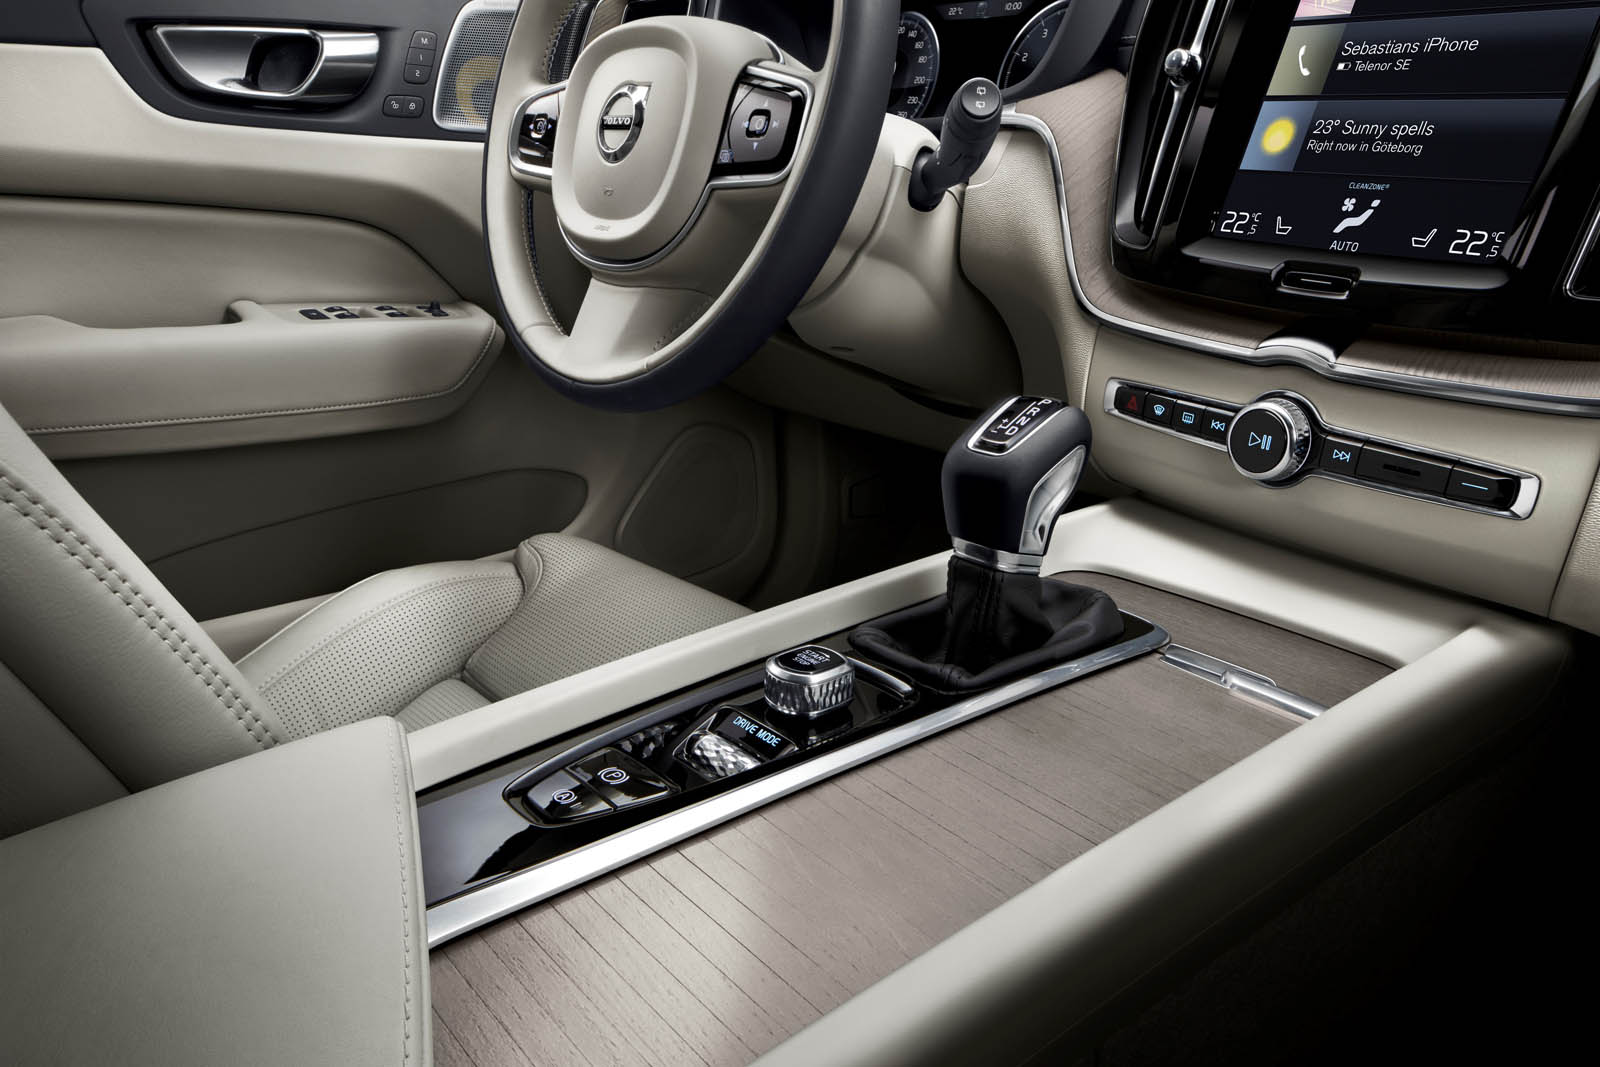 nouveau volvo xc60 une seconde g n ration prometteuse french driver. Black Bedroom Furniture Sets. Home Design Ideas